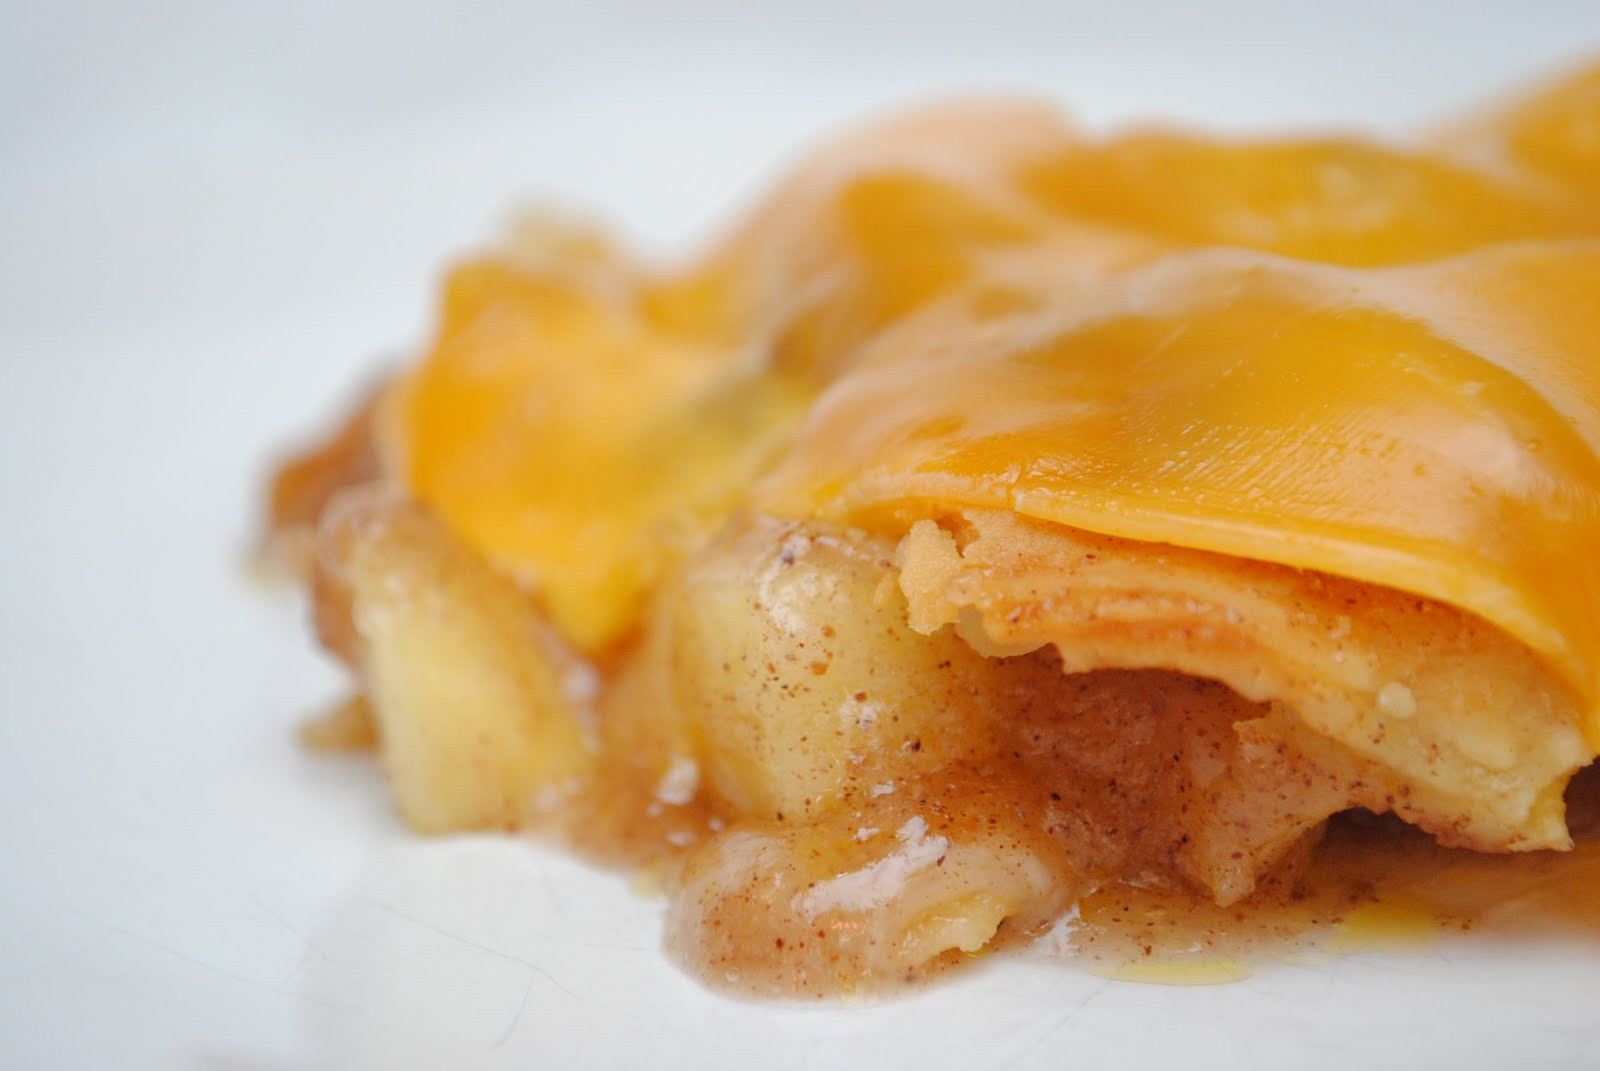 Apple Pie With Cheese  Do you have cheddar cheese on your Apple Pie